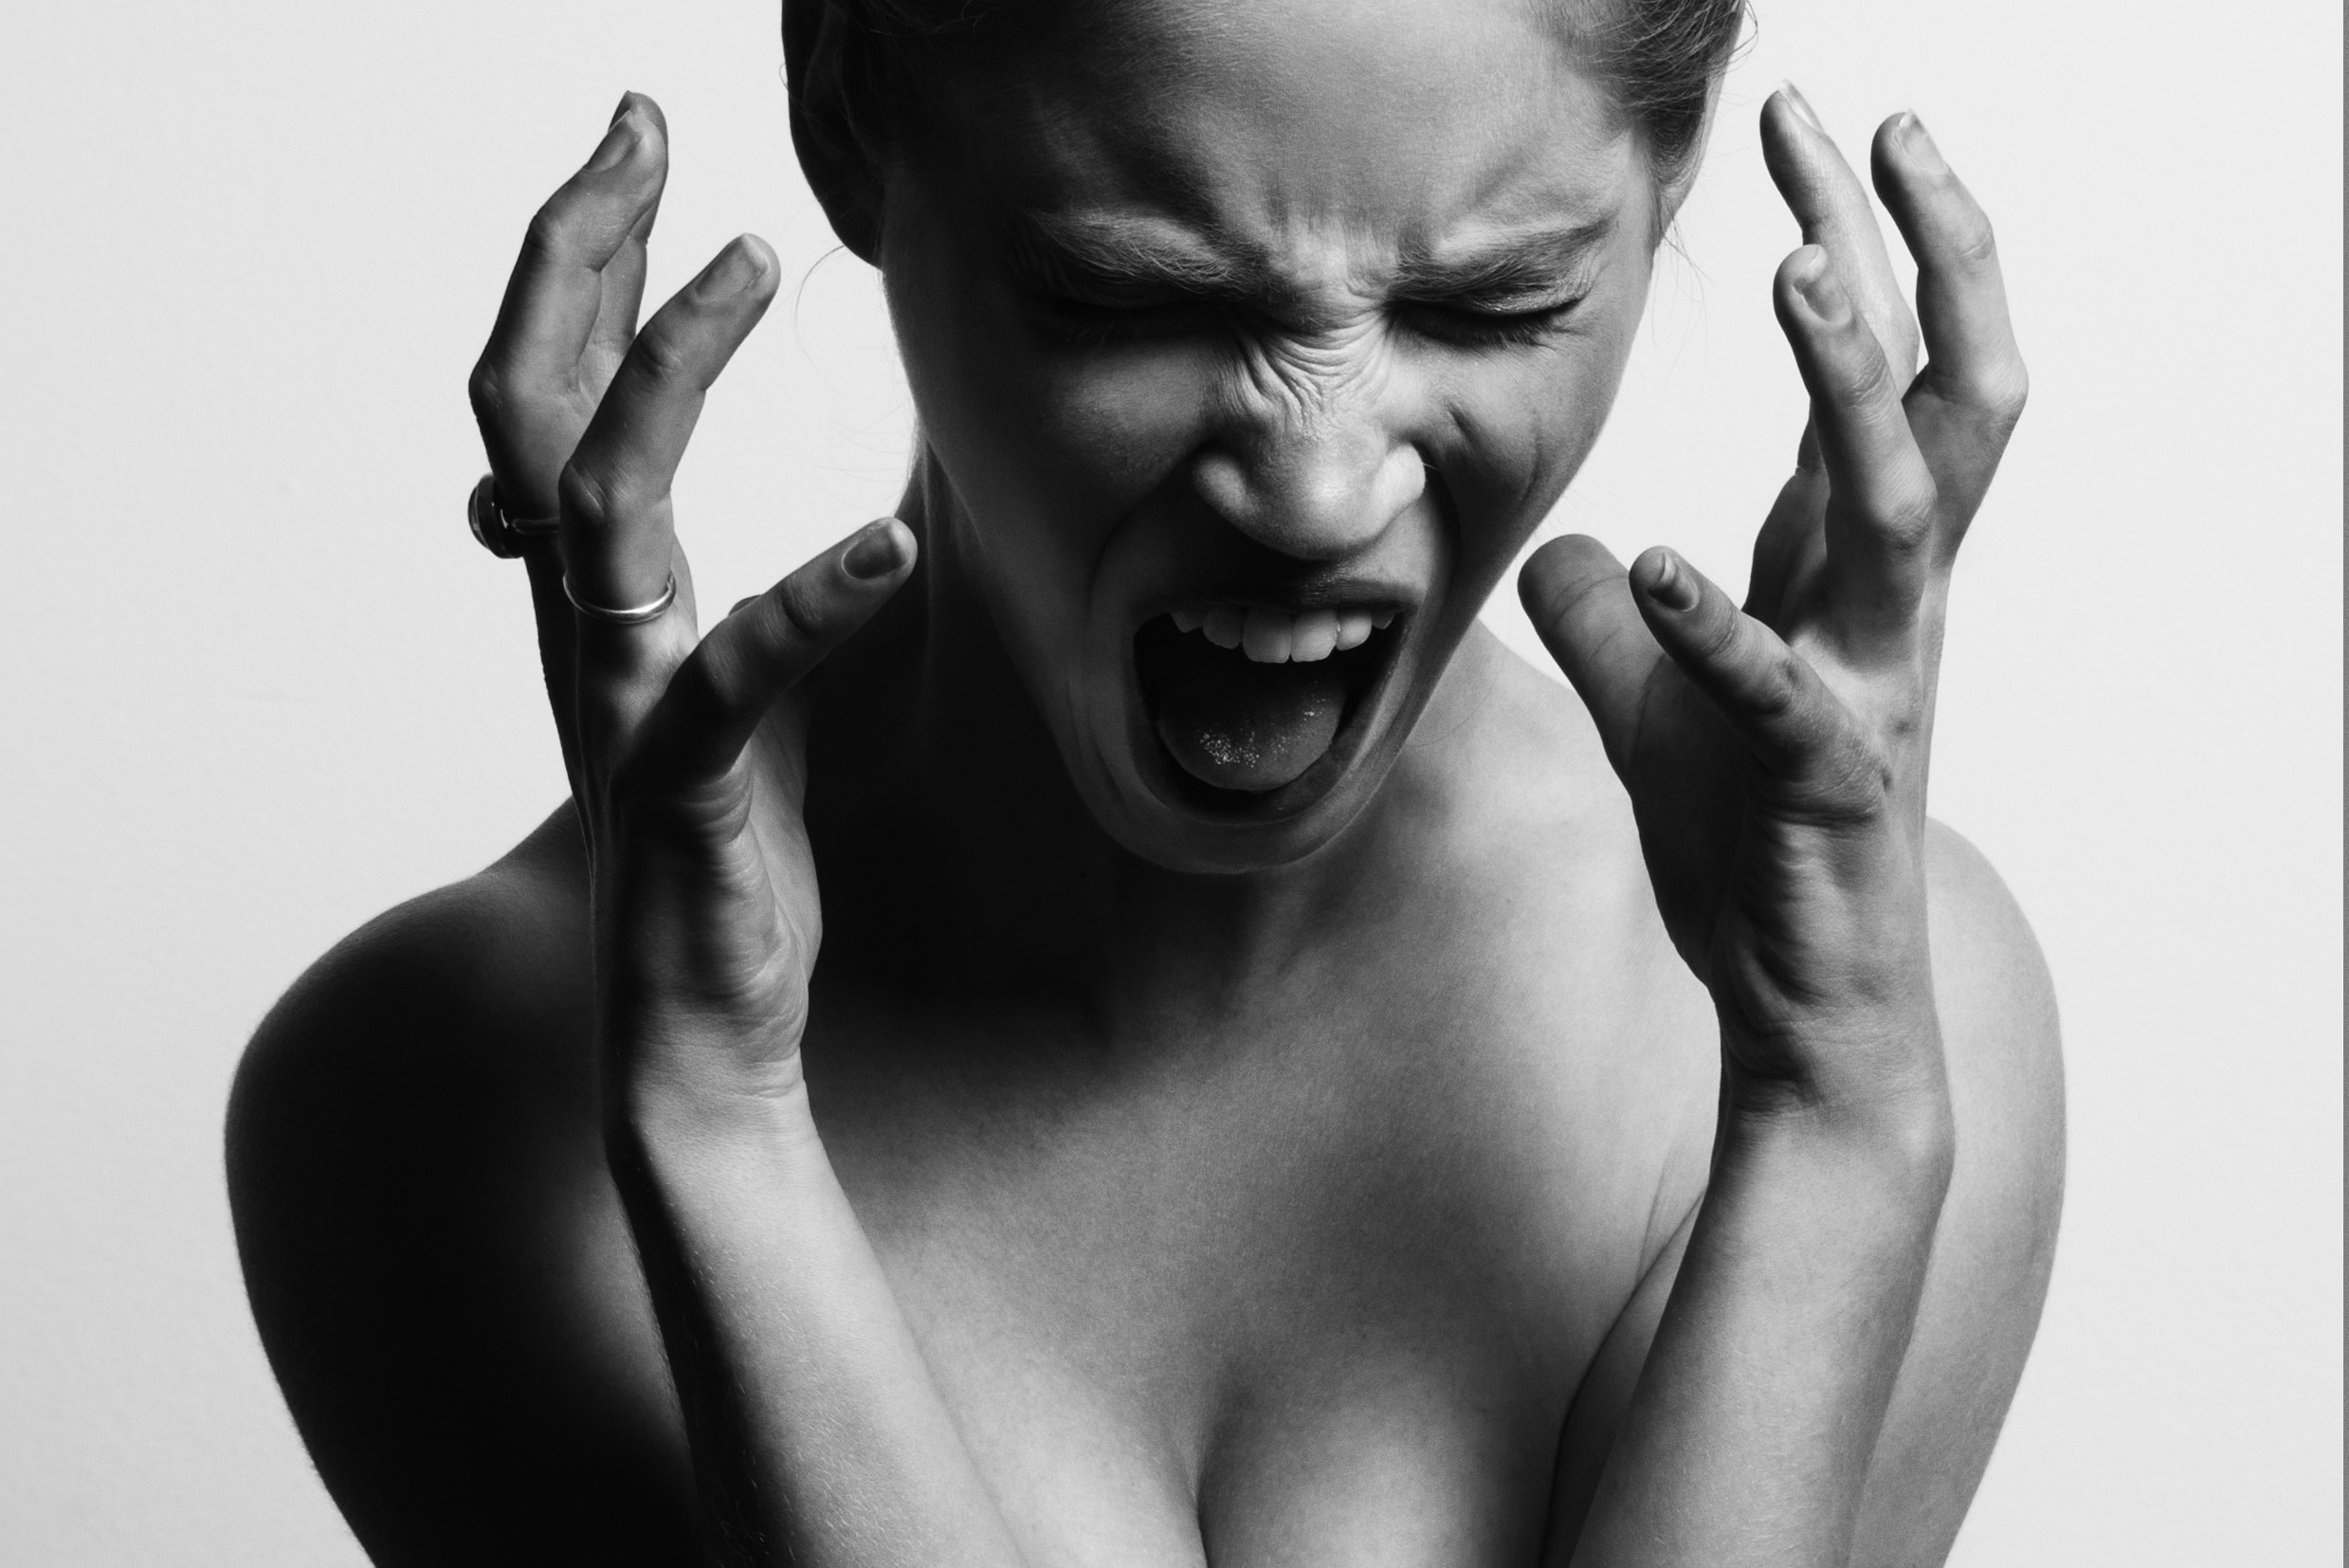 Can T Do My Job Because Of Anxiety 18 glaring signs you are ready to quit your job - the ascent